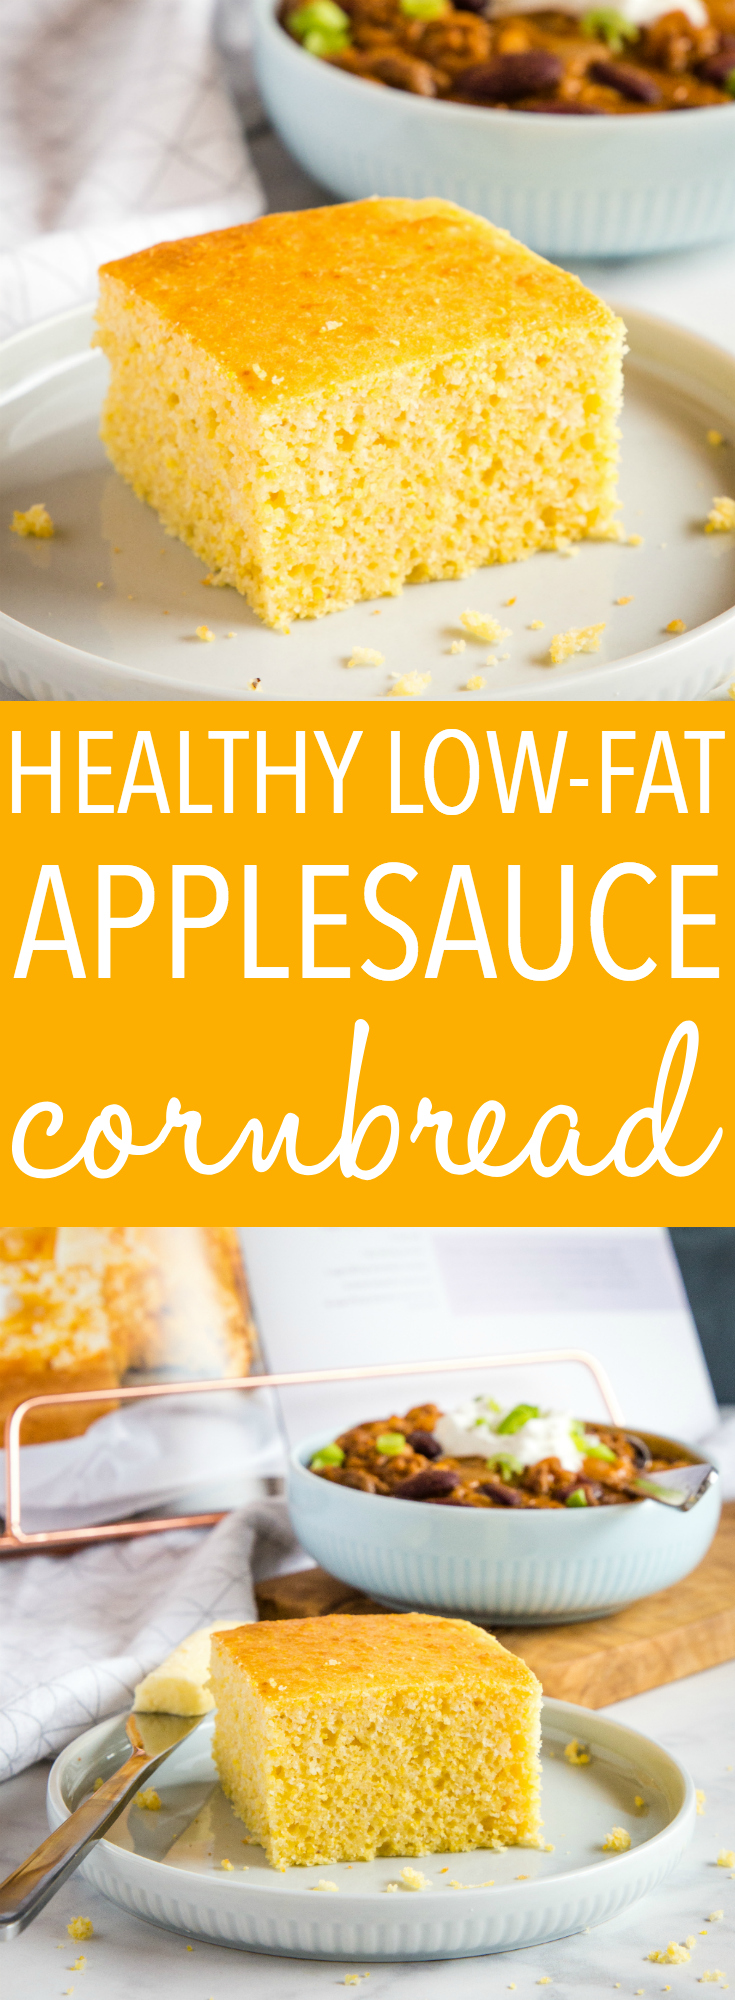 This Healthier Low Fat Cornbread is a wholesome alternative to traditional cornbread! It's light and tender and rivals any sweet cornbread recipe, with less fat and calories! Recipe from thebusybaker.ca! #cornbread #traditional #winter #comfortfood #fall #sidedish #bread #baking #applesauce #lowfat #lowsugar #light #weightwatchers via @busybakerblog